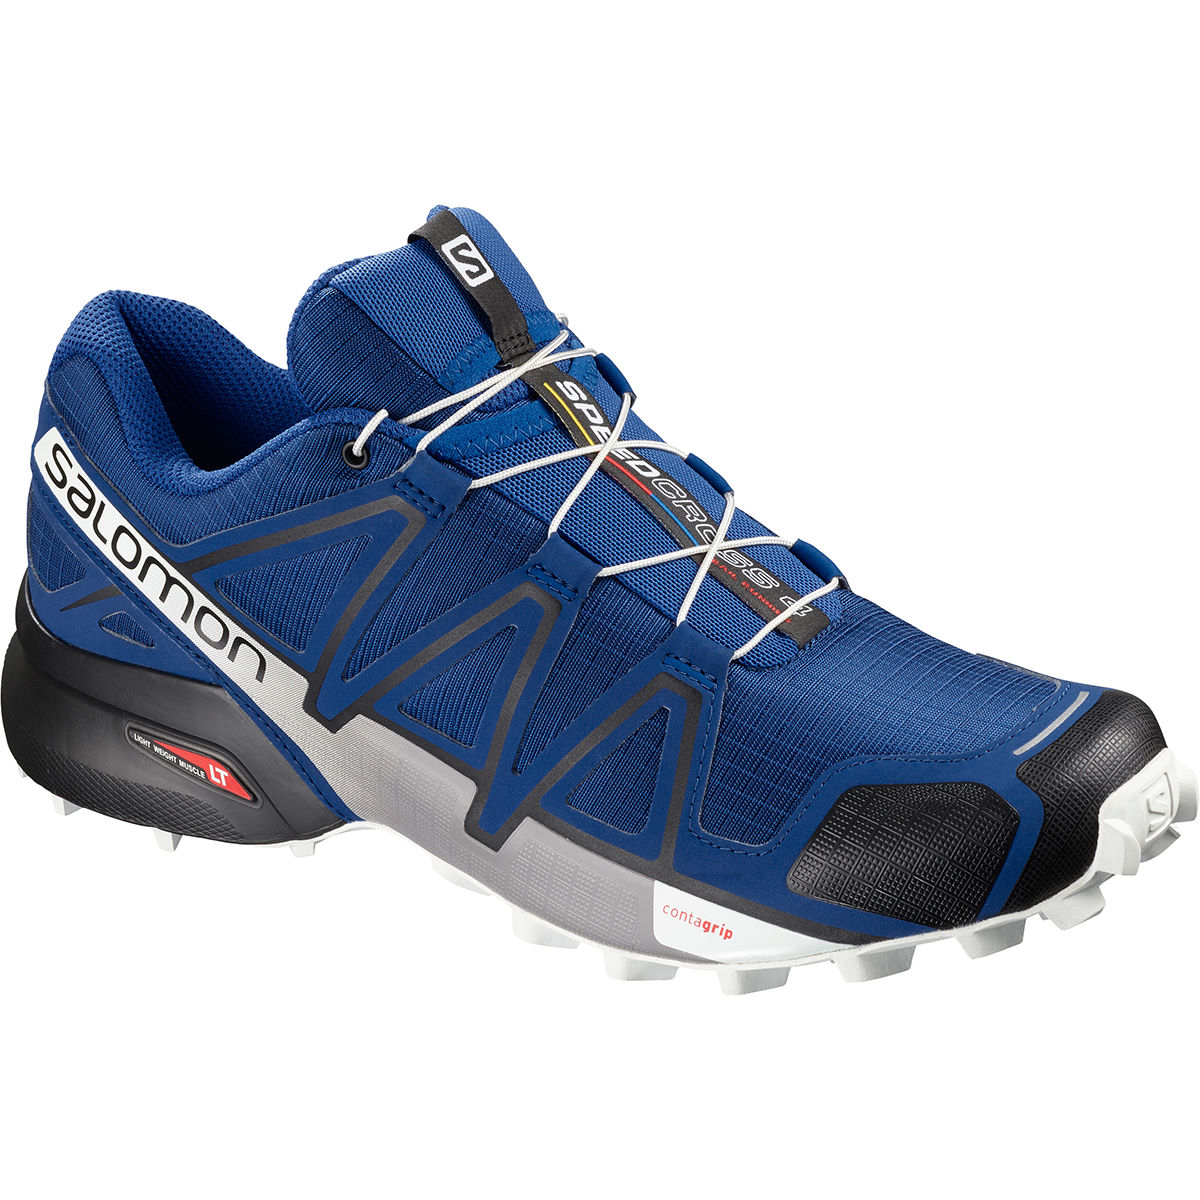 Zapatillas Salomon Speedcross 4 - Zapatillas de trail